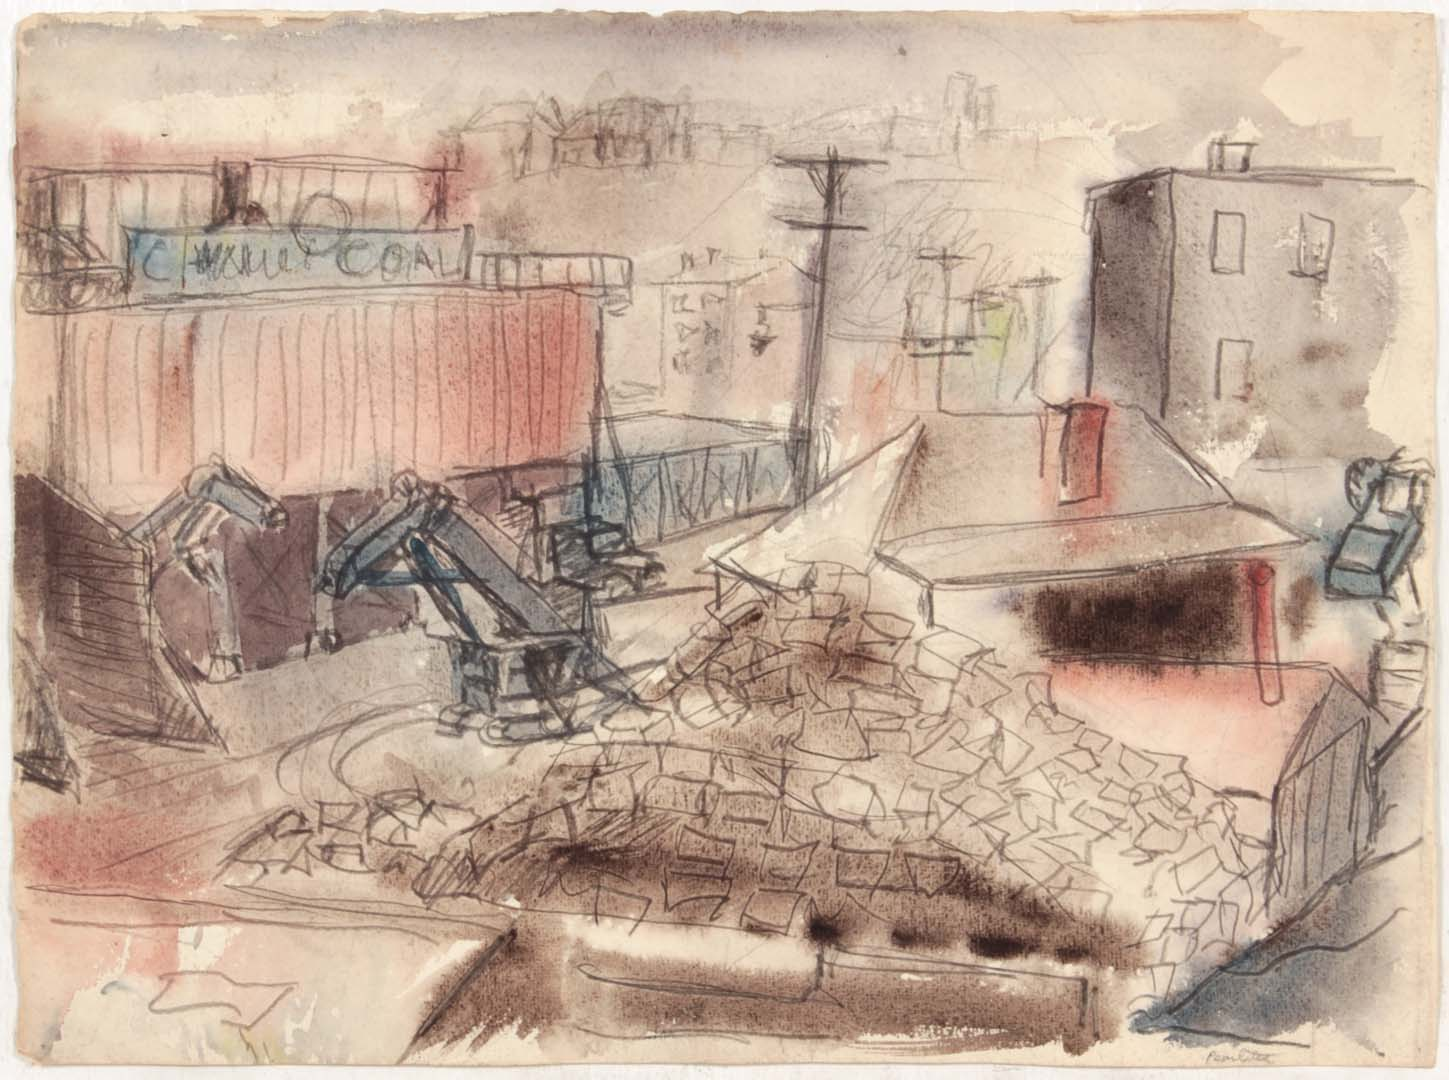 1949 NT (Pittsburgh Coal) Graphite and Wash on paper 12 x 16.25